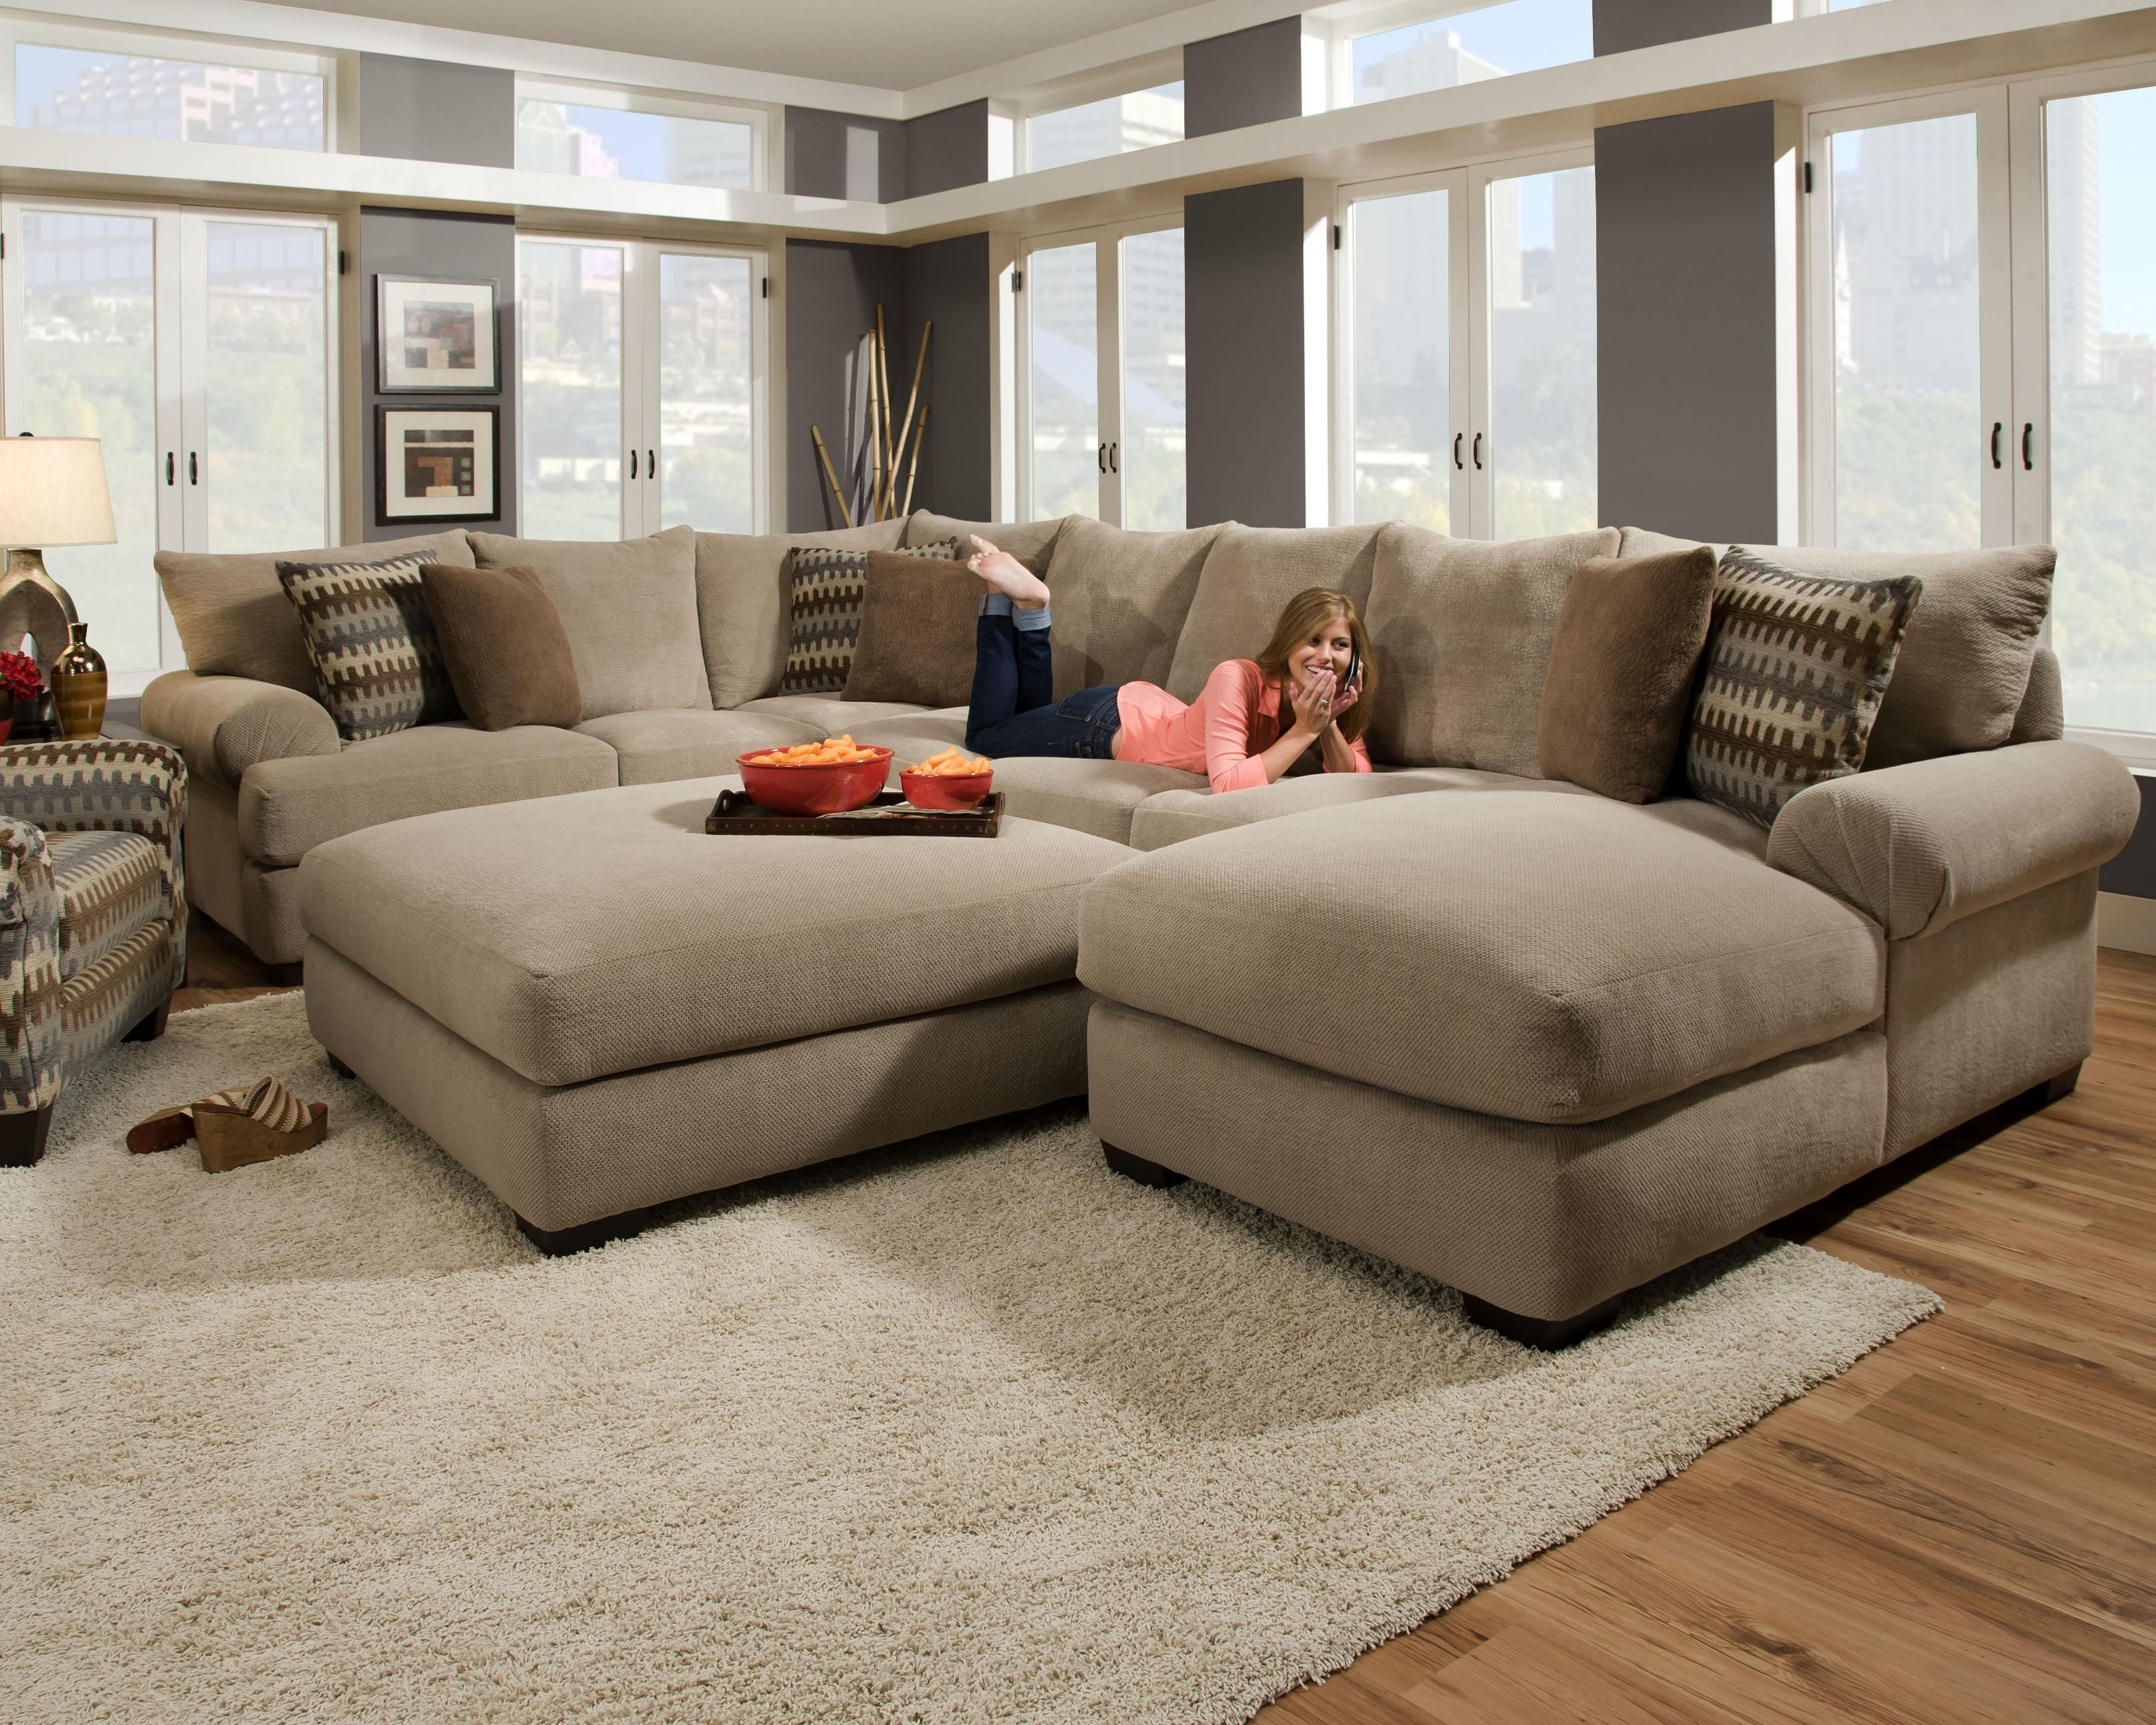 Furniture Design Idea For Living Room And Oversized U Shaped pertaining to Extra Large U Shaped Sectionals (Image 7 of 15)